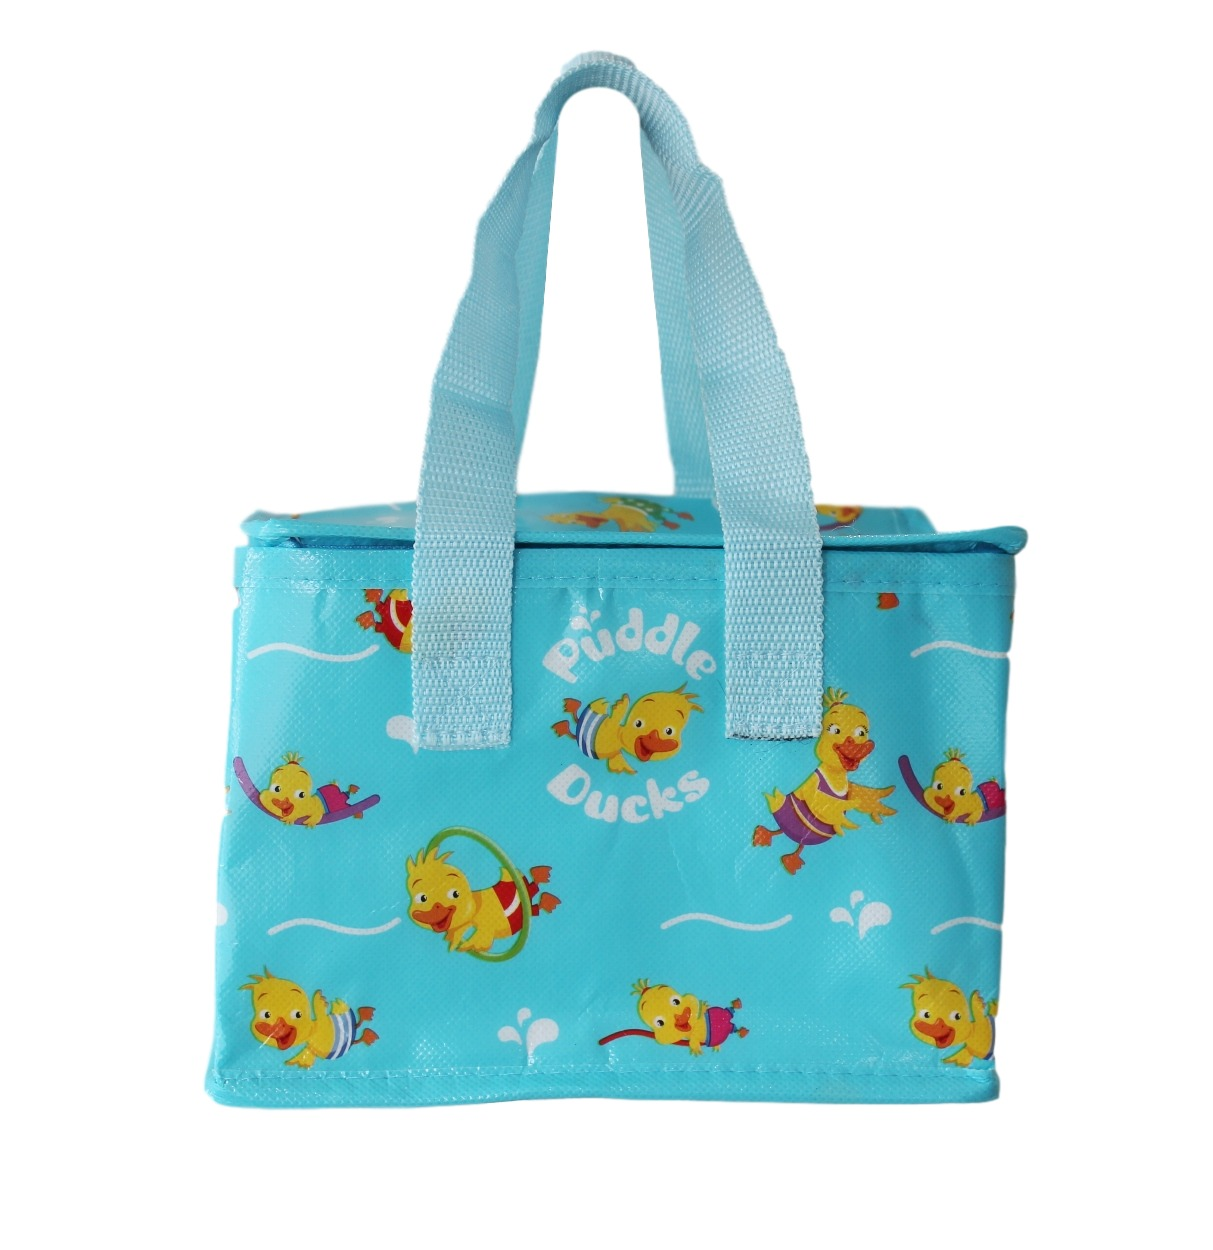 Puddle Ducks Lunchbag